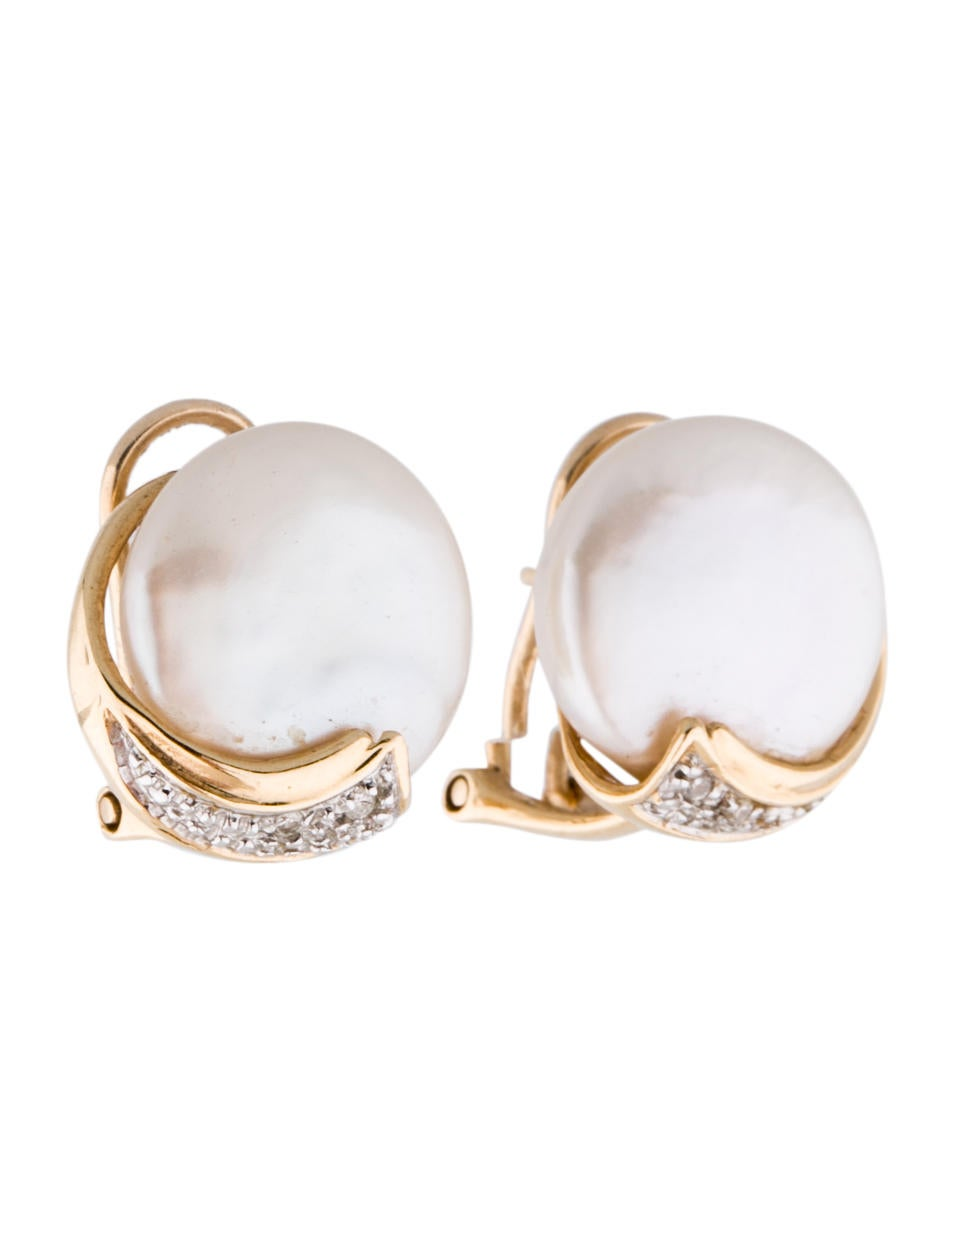 14k mabe pearl and diamond earrings earrings fje24872. Black Bedroom Furniture Sets. Home Design Ideas